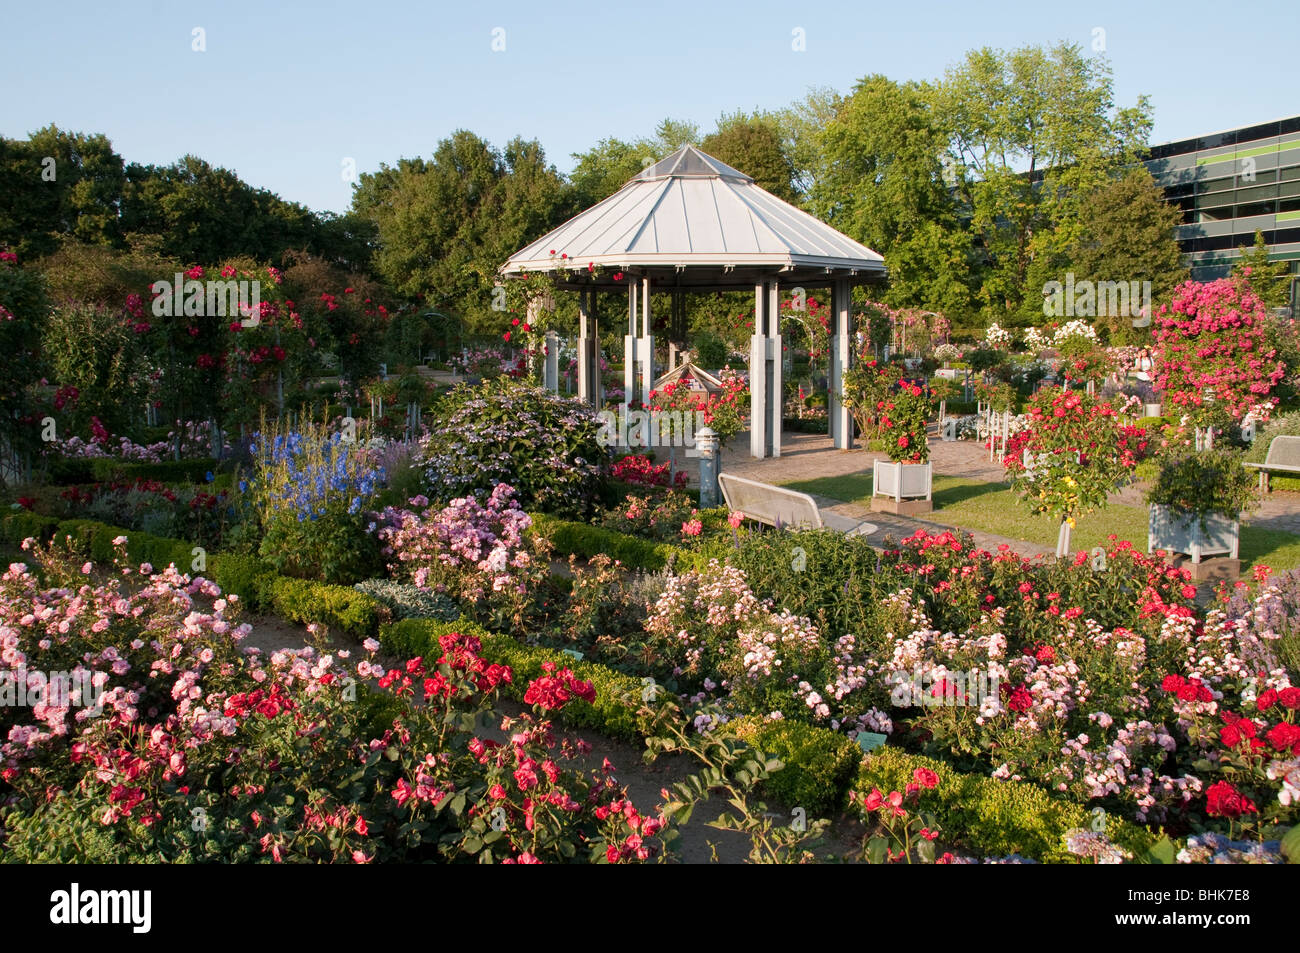 rosengarten mit pavillon planten un blomen hamburg deutschland stock photo royalty free. Black Bedroom Furniture Sets. Home Design Ideas